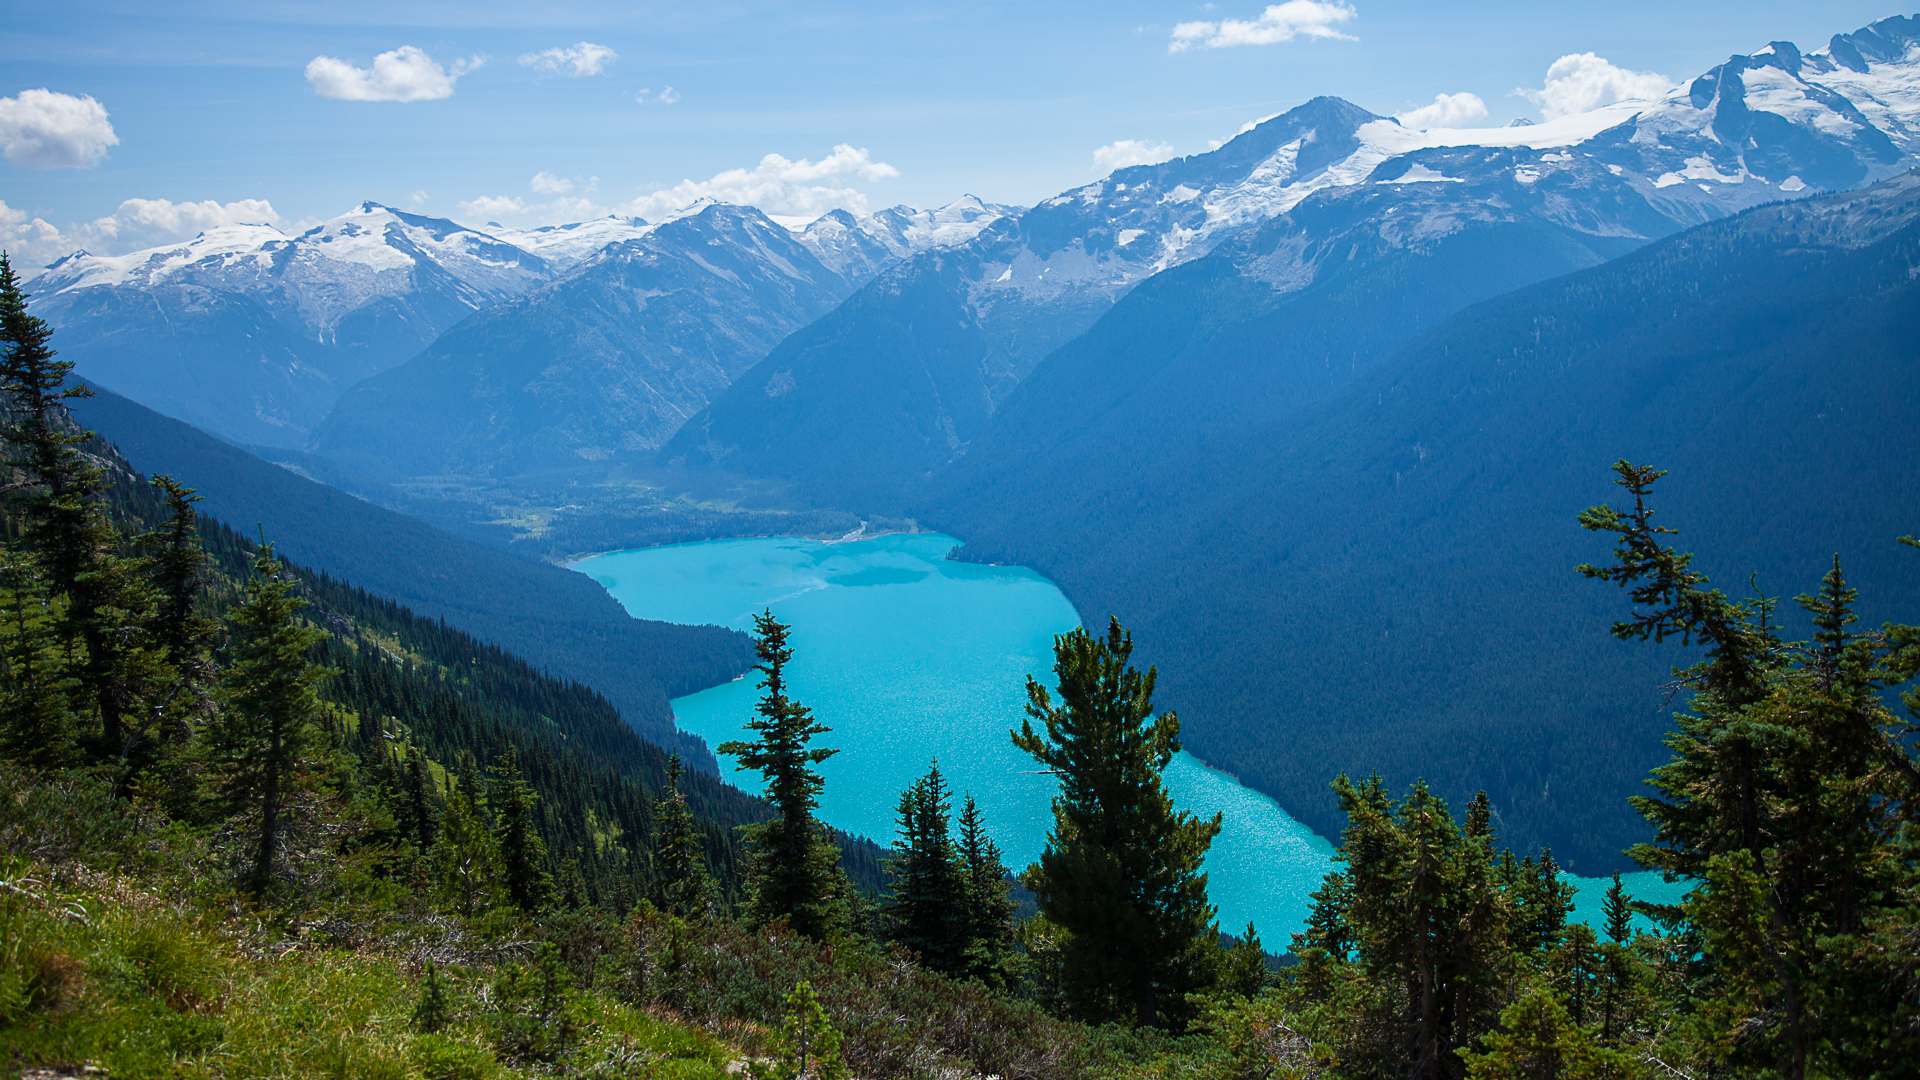 Cheakamus Lake, in all its turquoise glory off the back side of Whistler Mountain.